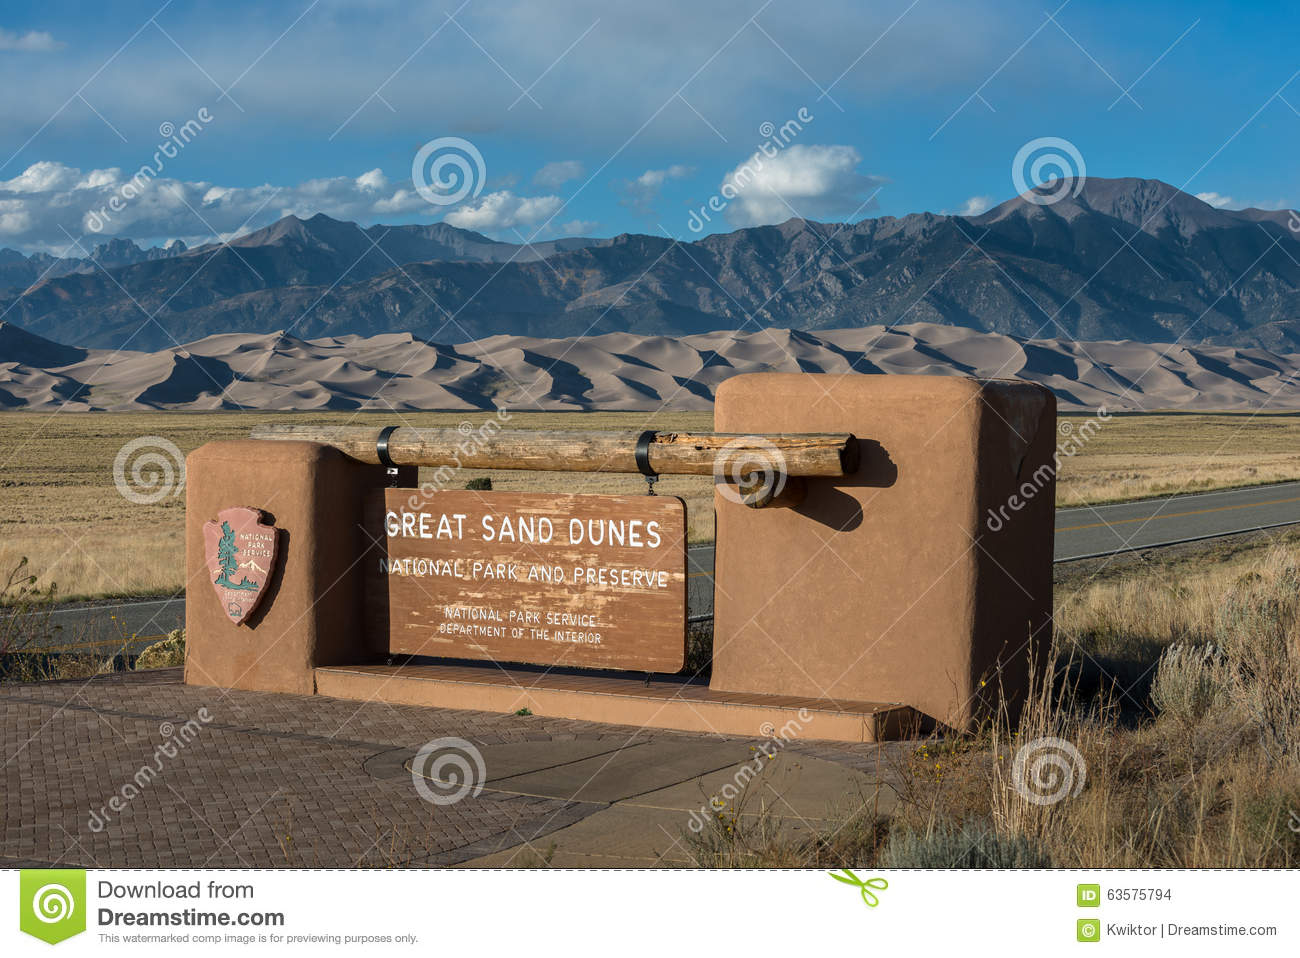 Great Sand Dunes National Park Entrance Sign Stock Photo.